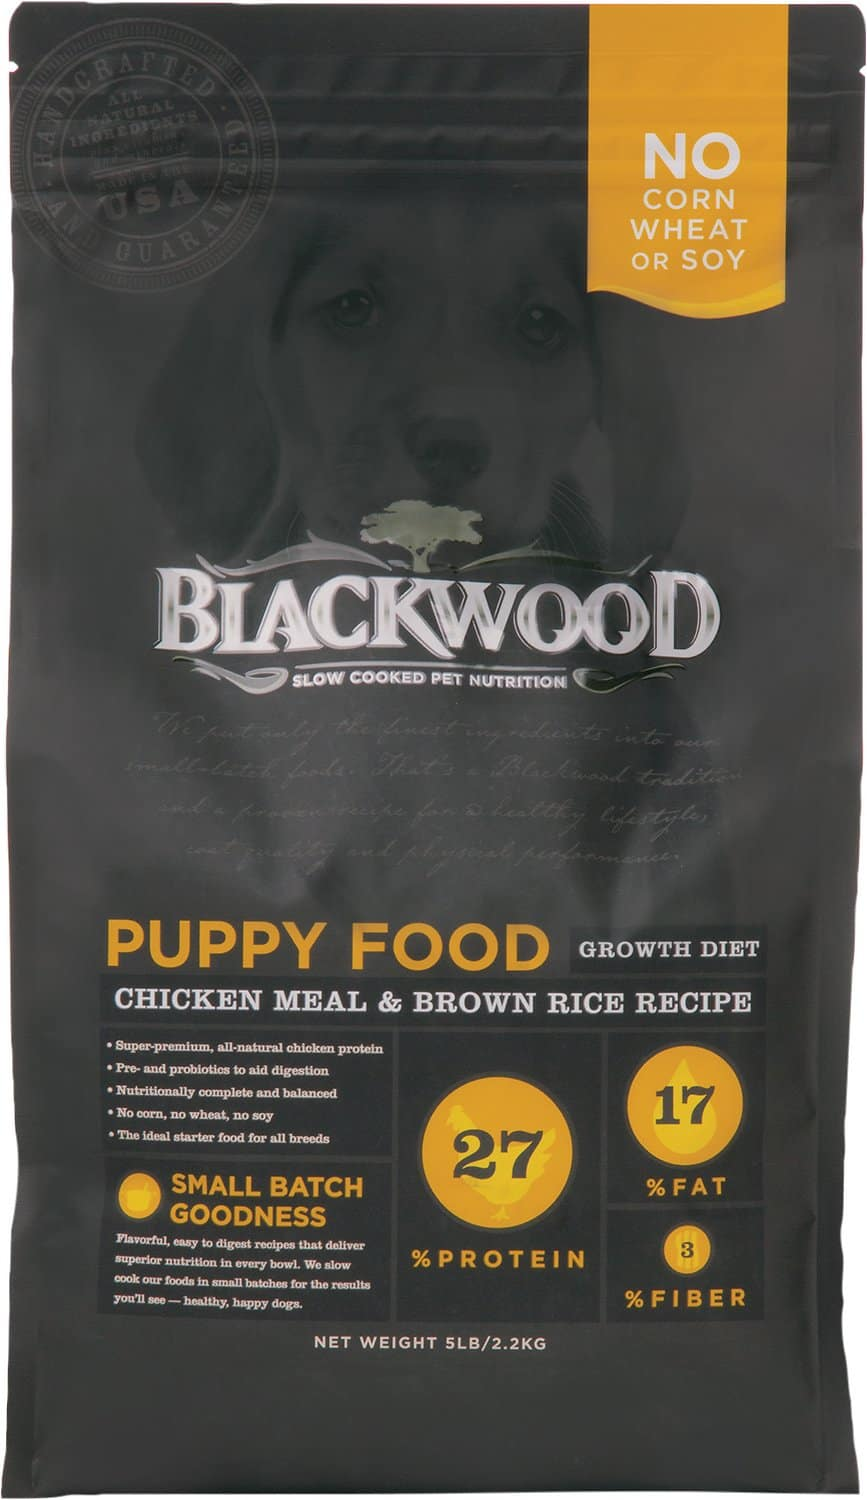 Blackwood Dog Food Review [year]: Best Slow Cooked Pet Nutrition? 16